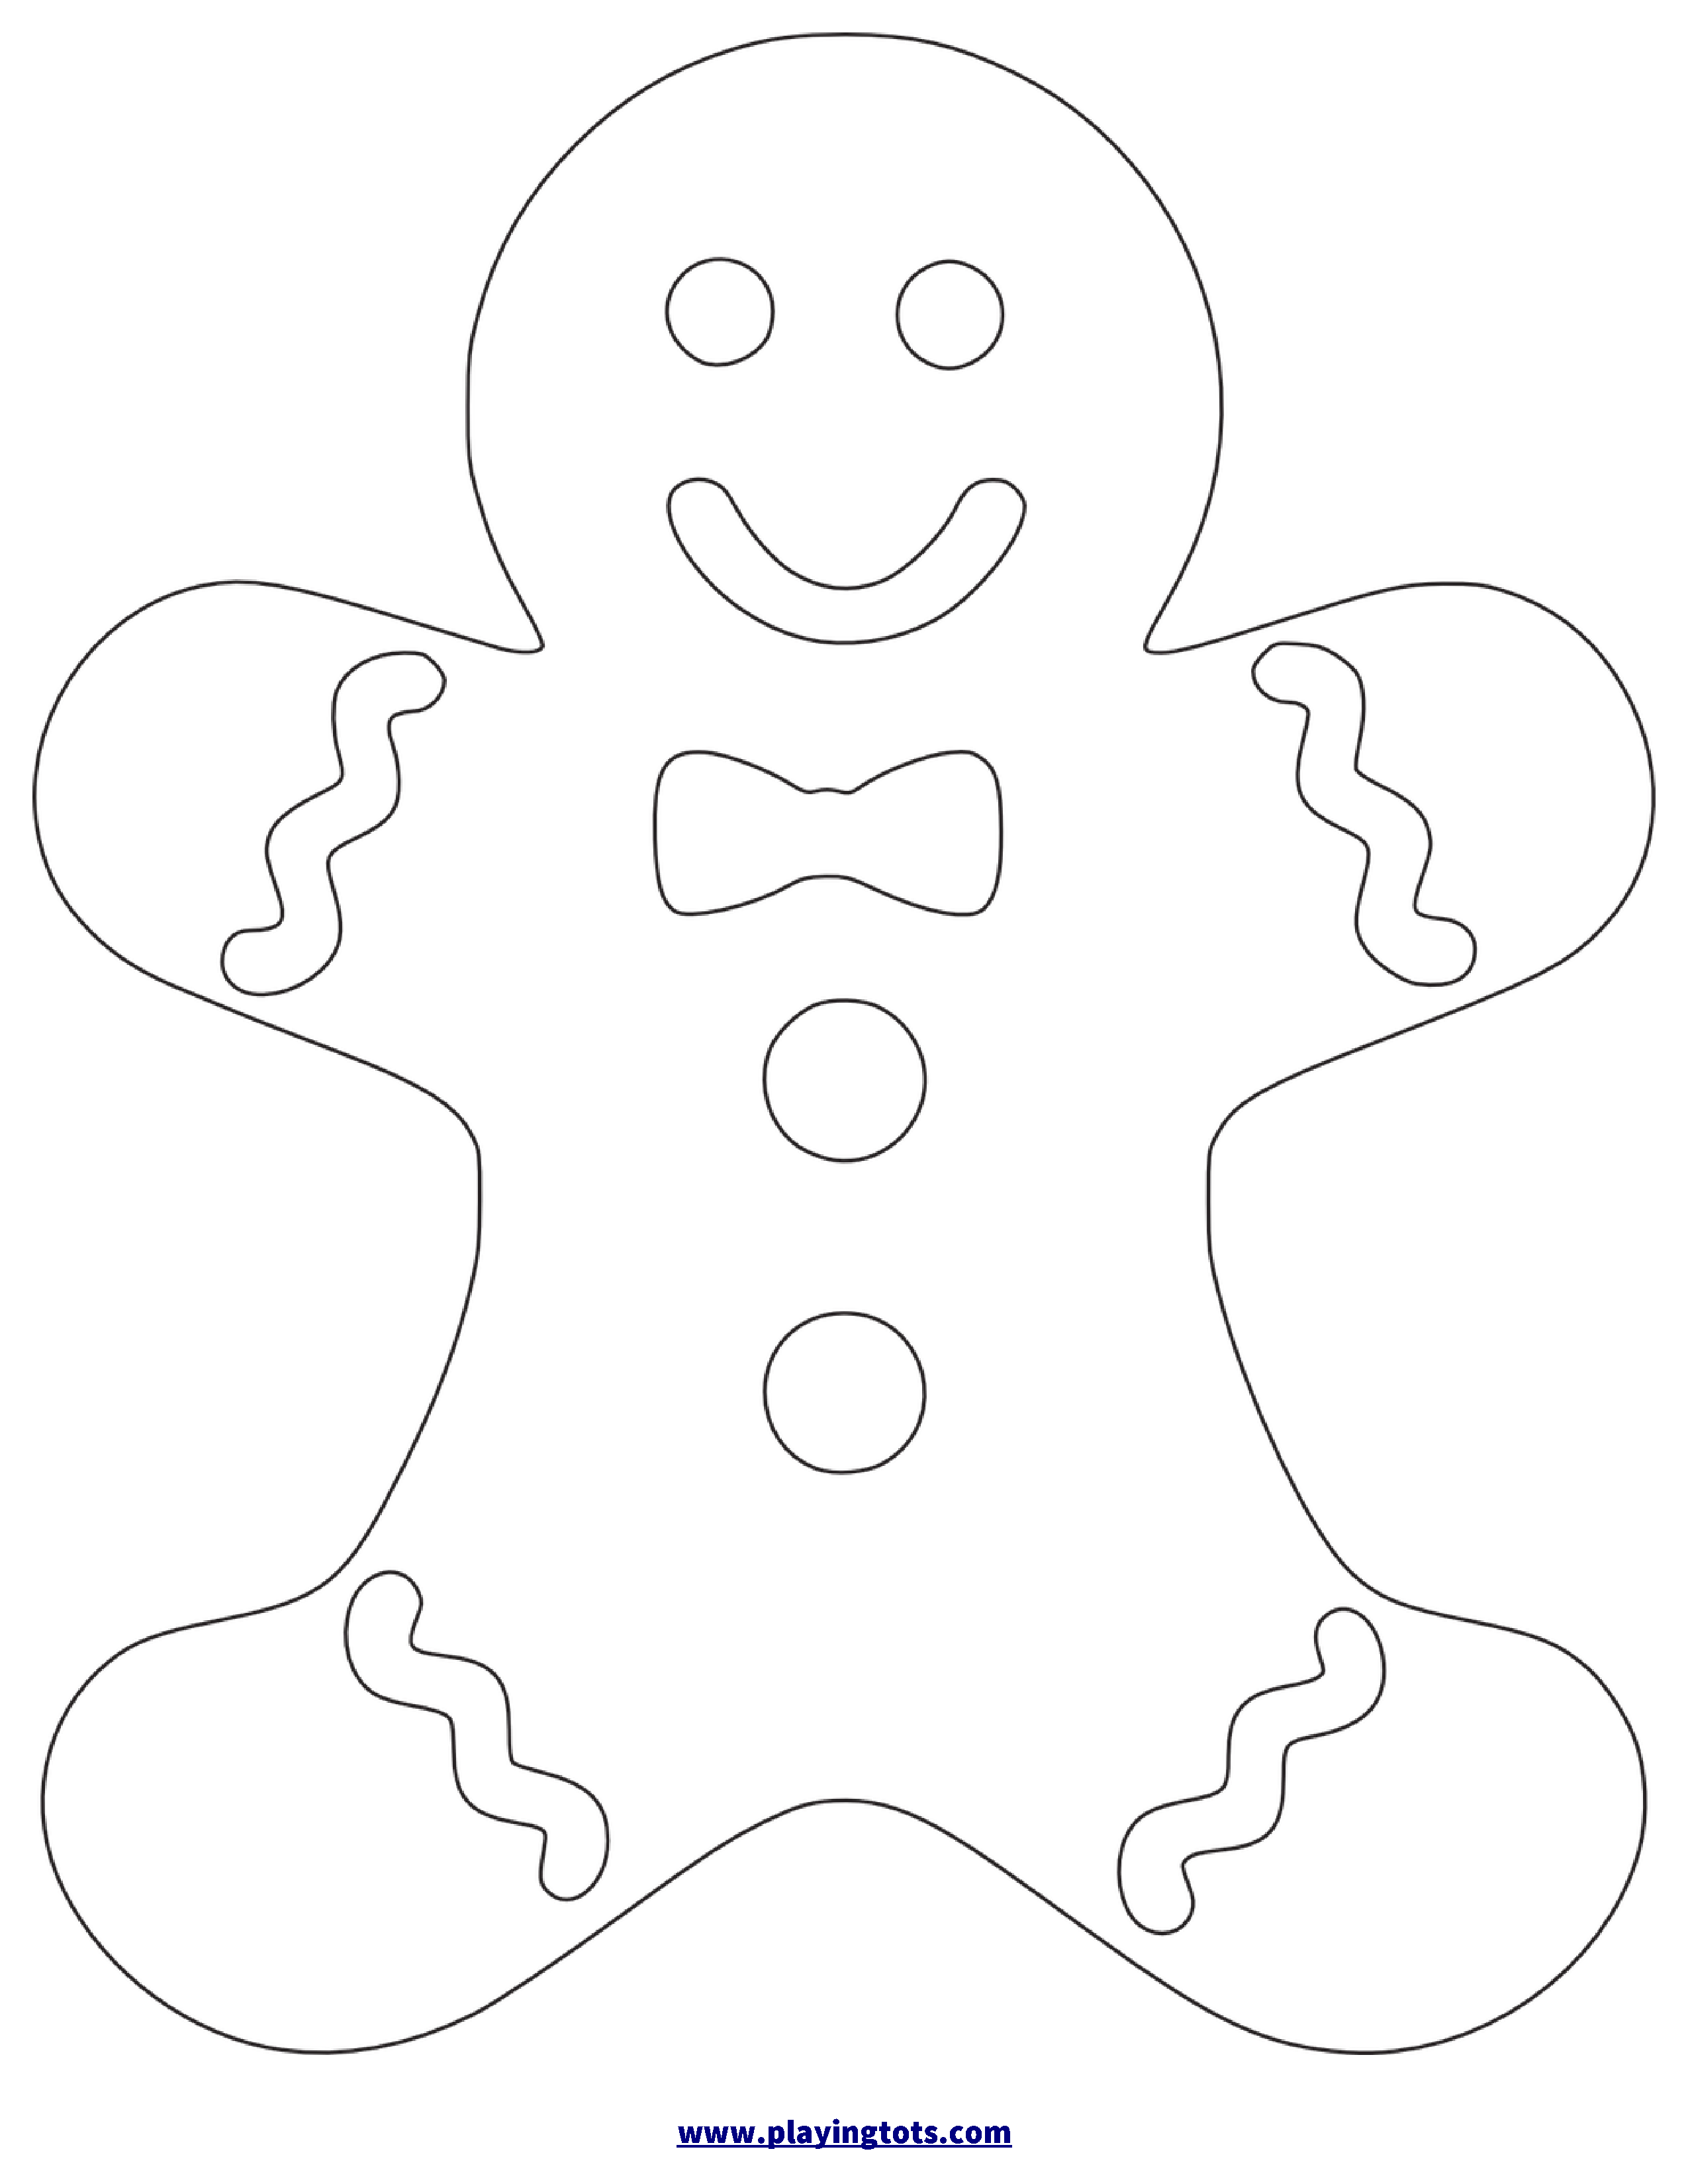 the gingerbread man template 8 free printable large and small gingerbread man templates gingerbread the man template